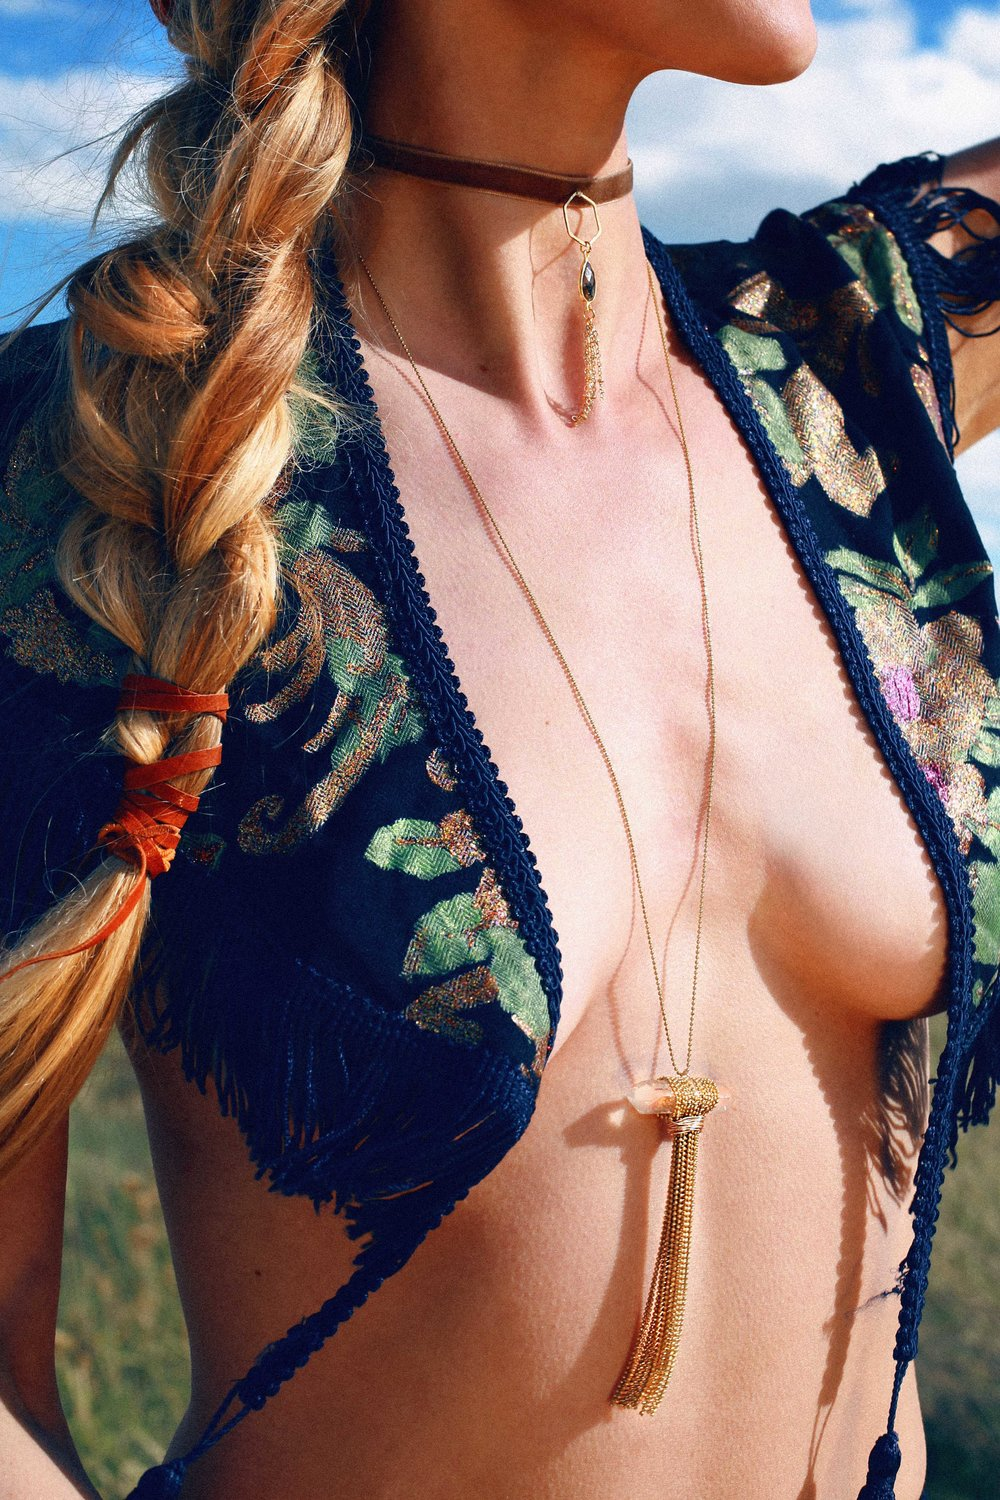 COLORADO GYPSY DREAMIN' - Photo Shoot Story shot by Alyssa Risley - IG @alyssarisley #JEWELRY